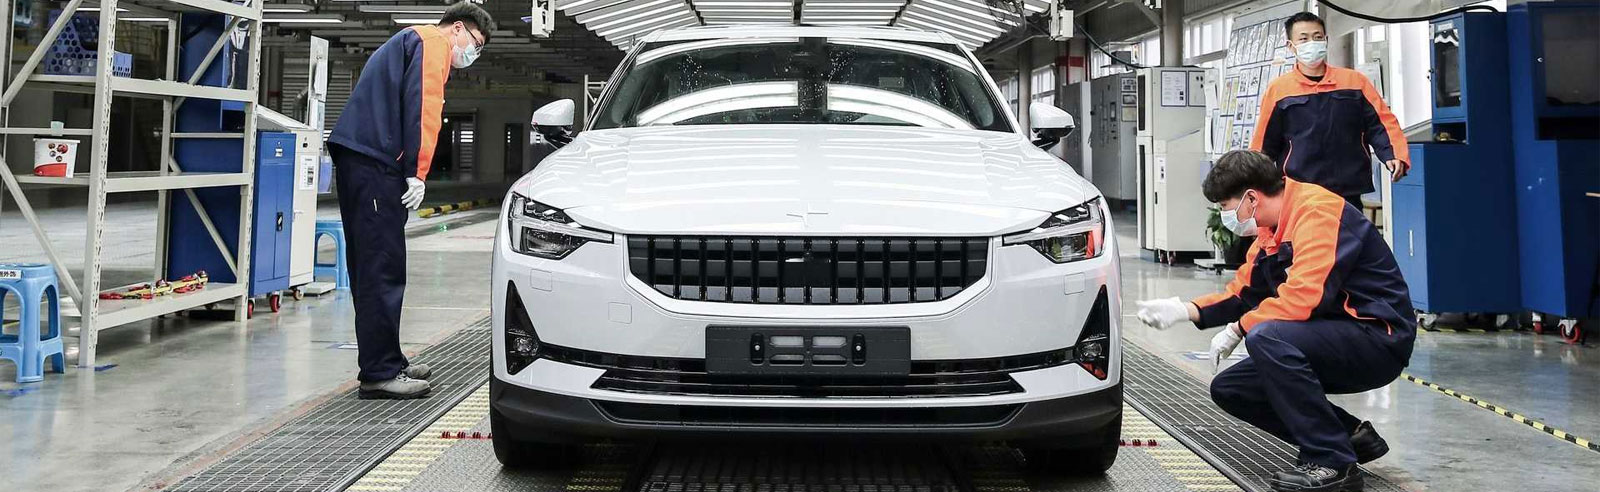 Polestar 2 is now in production in China